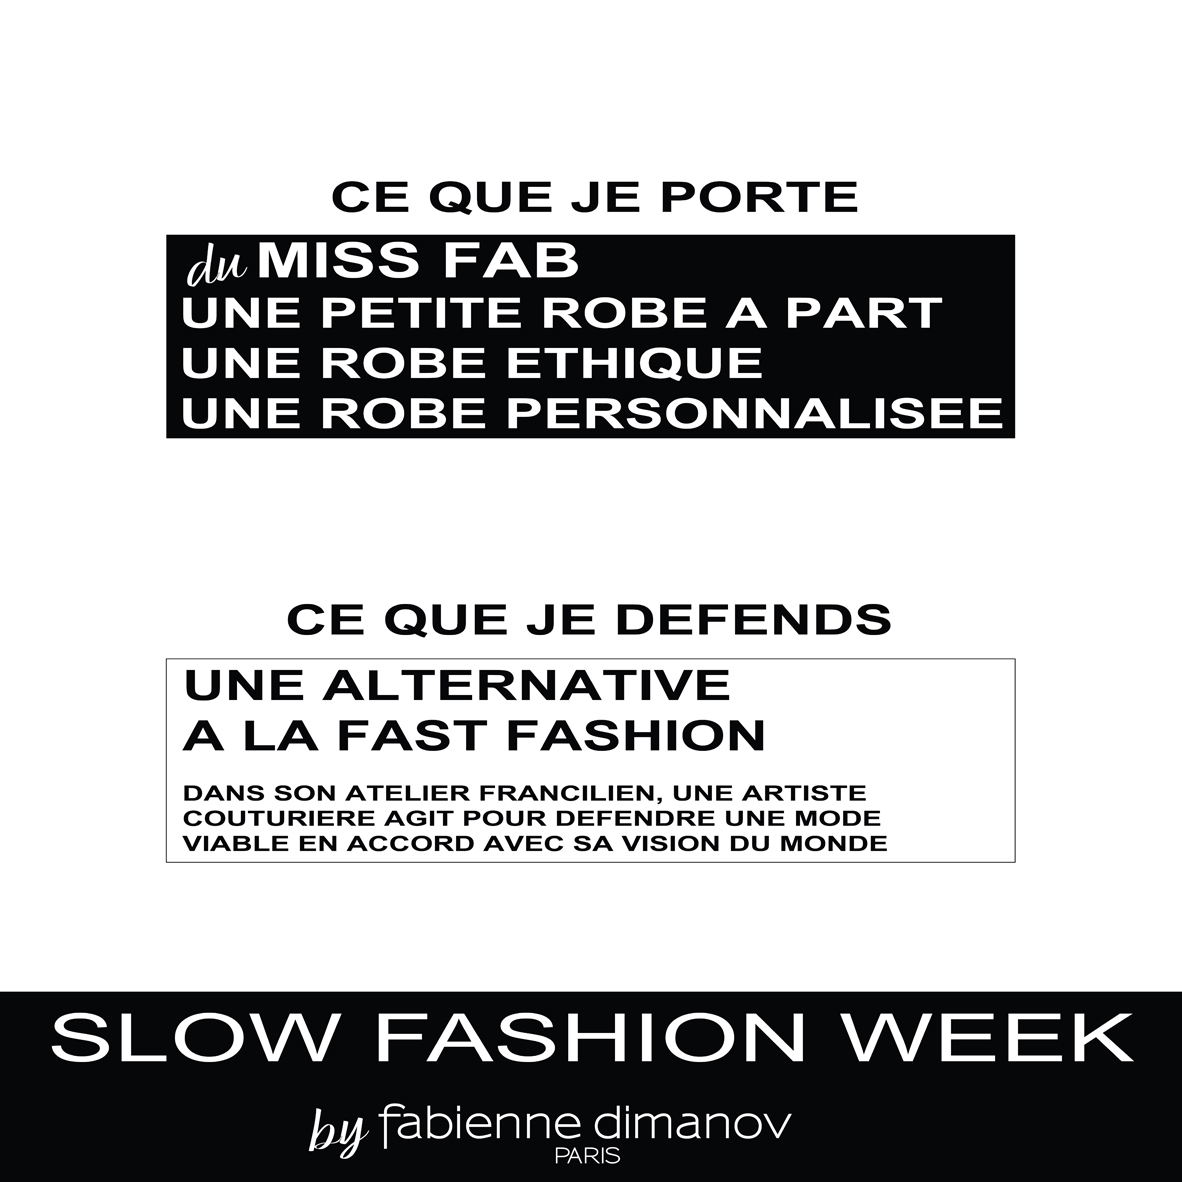 Slow fashion days 2018 - Fabienne Dimanov Paris